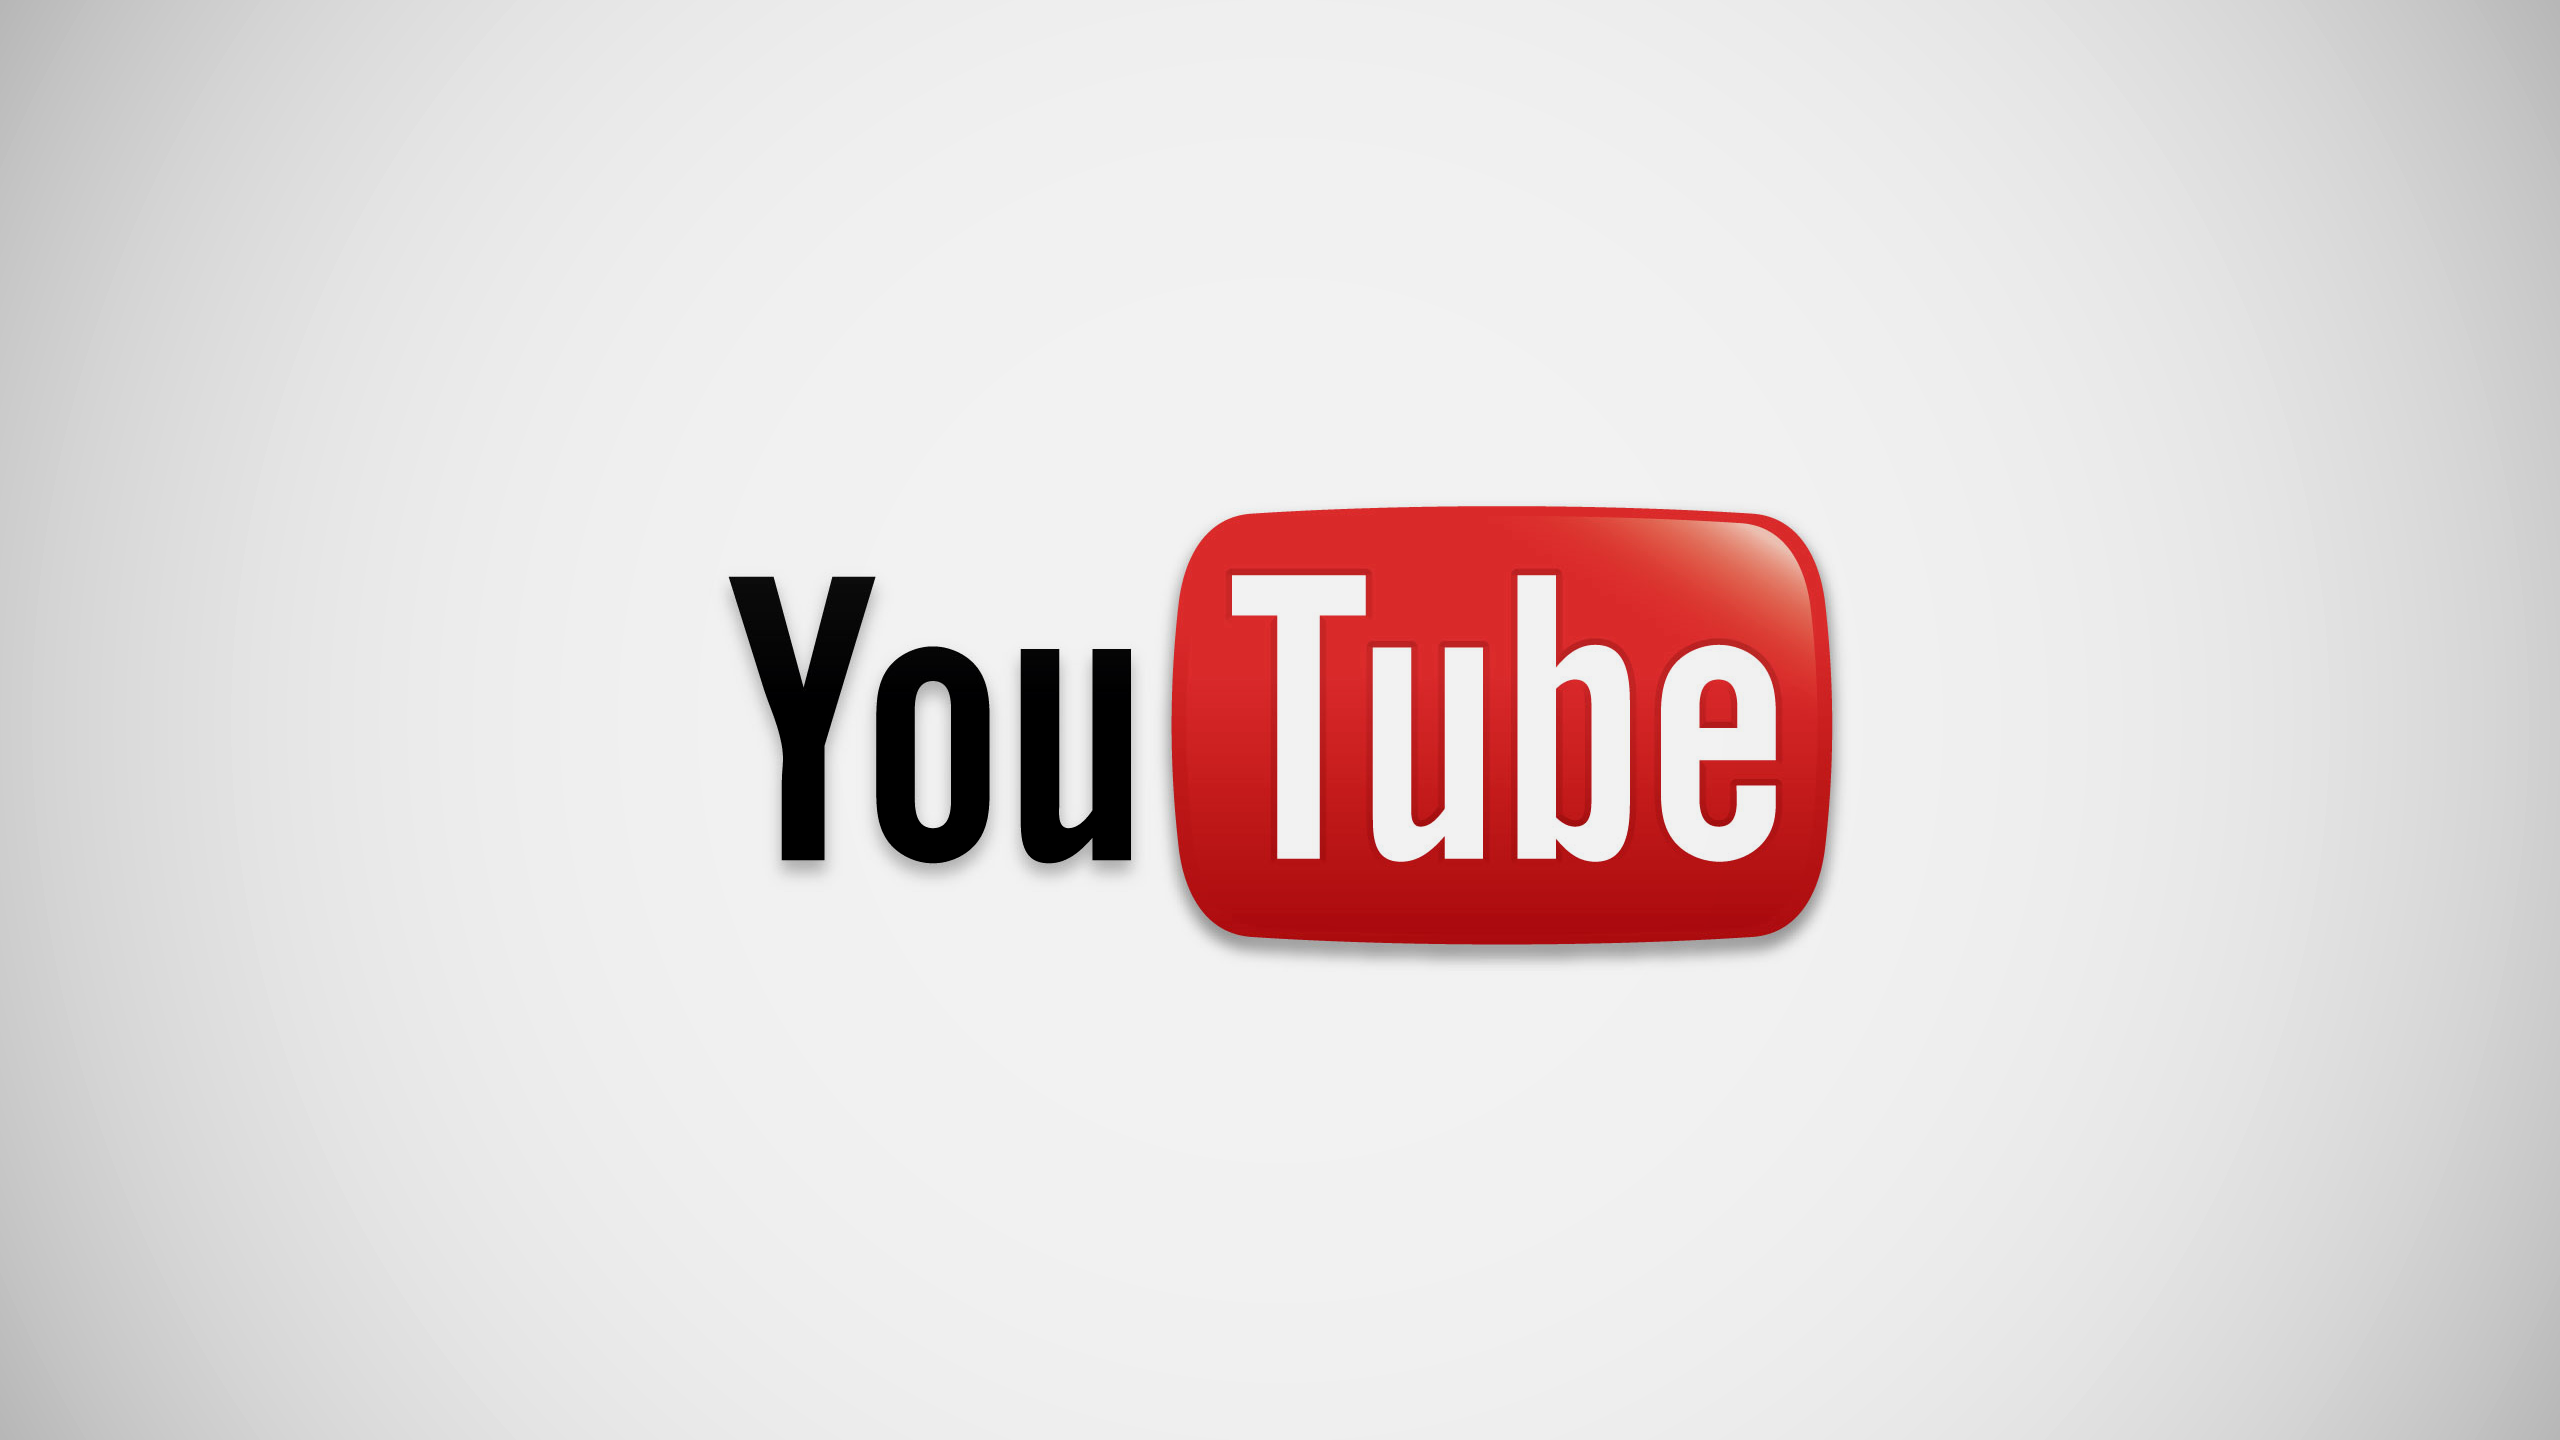 YouTube Channel Art 2560X1440